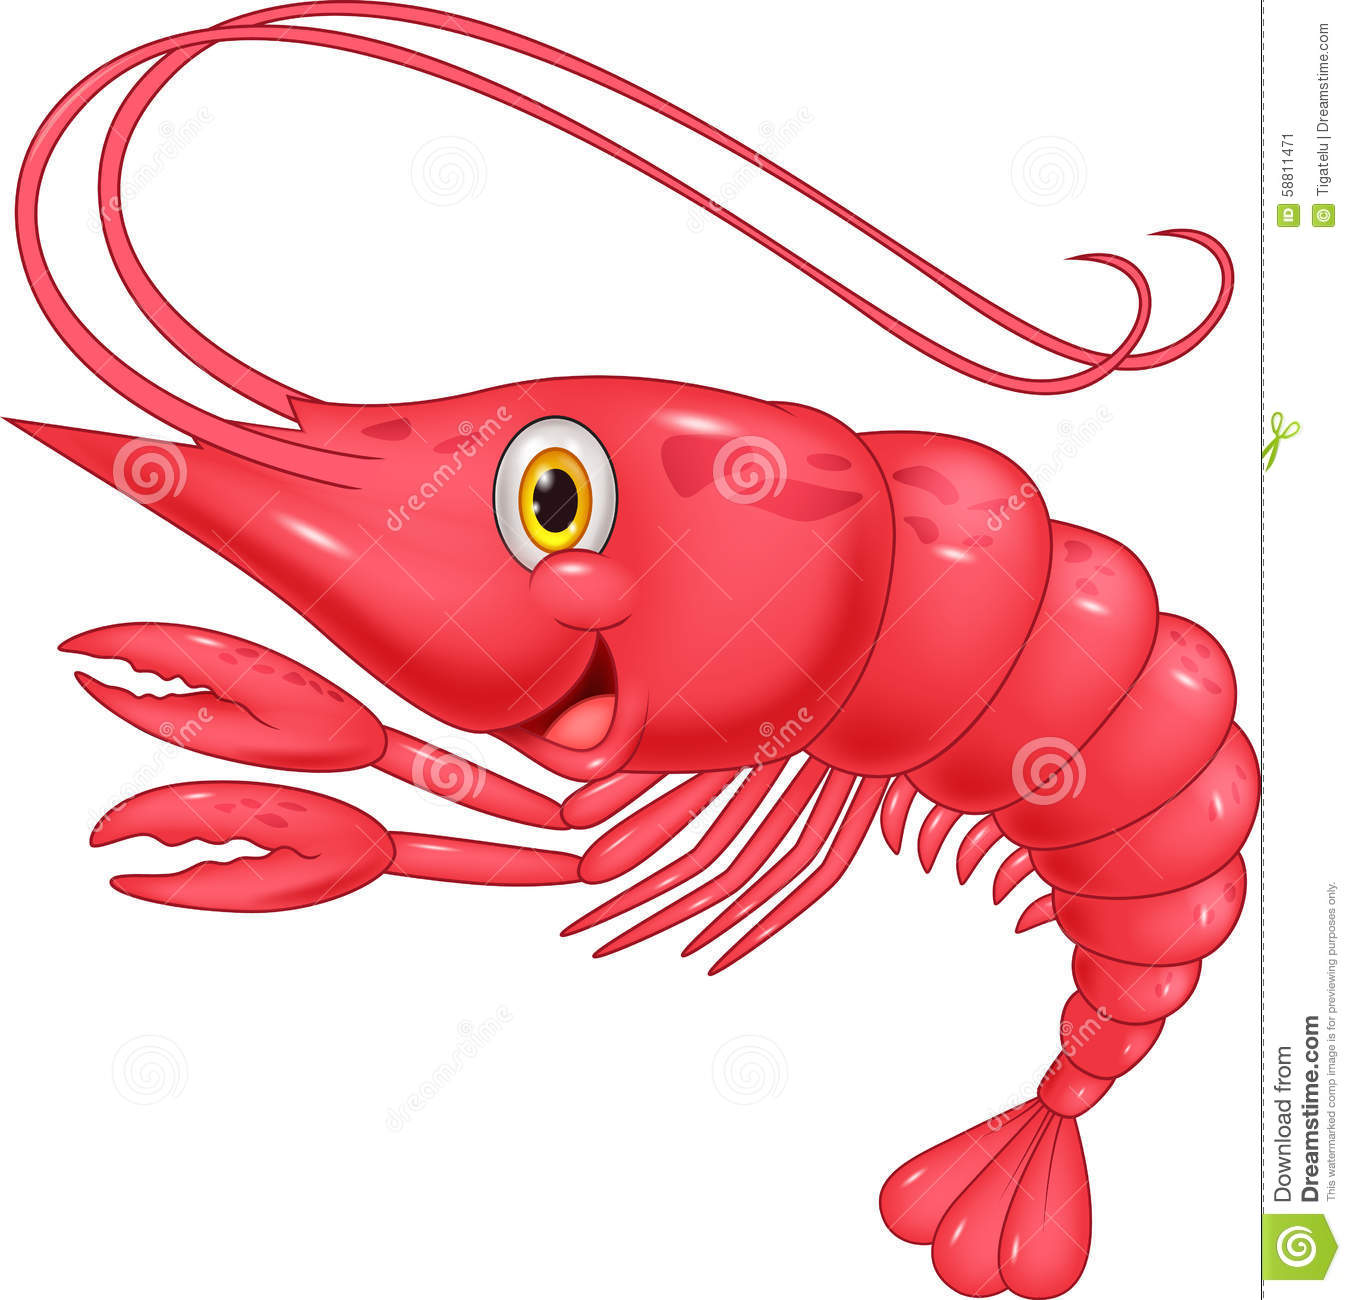 Stock Illustration Cute Shrimp Cartoon Illustration Image58811471